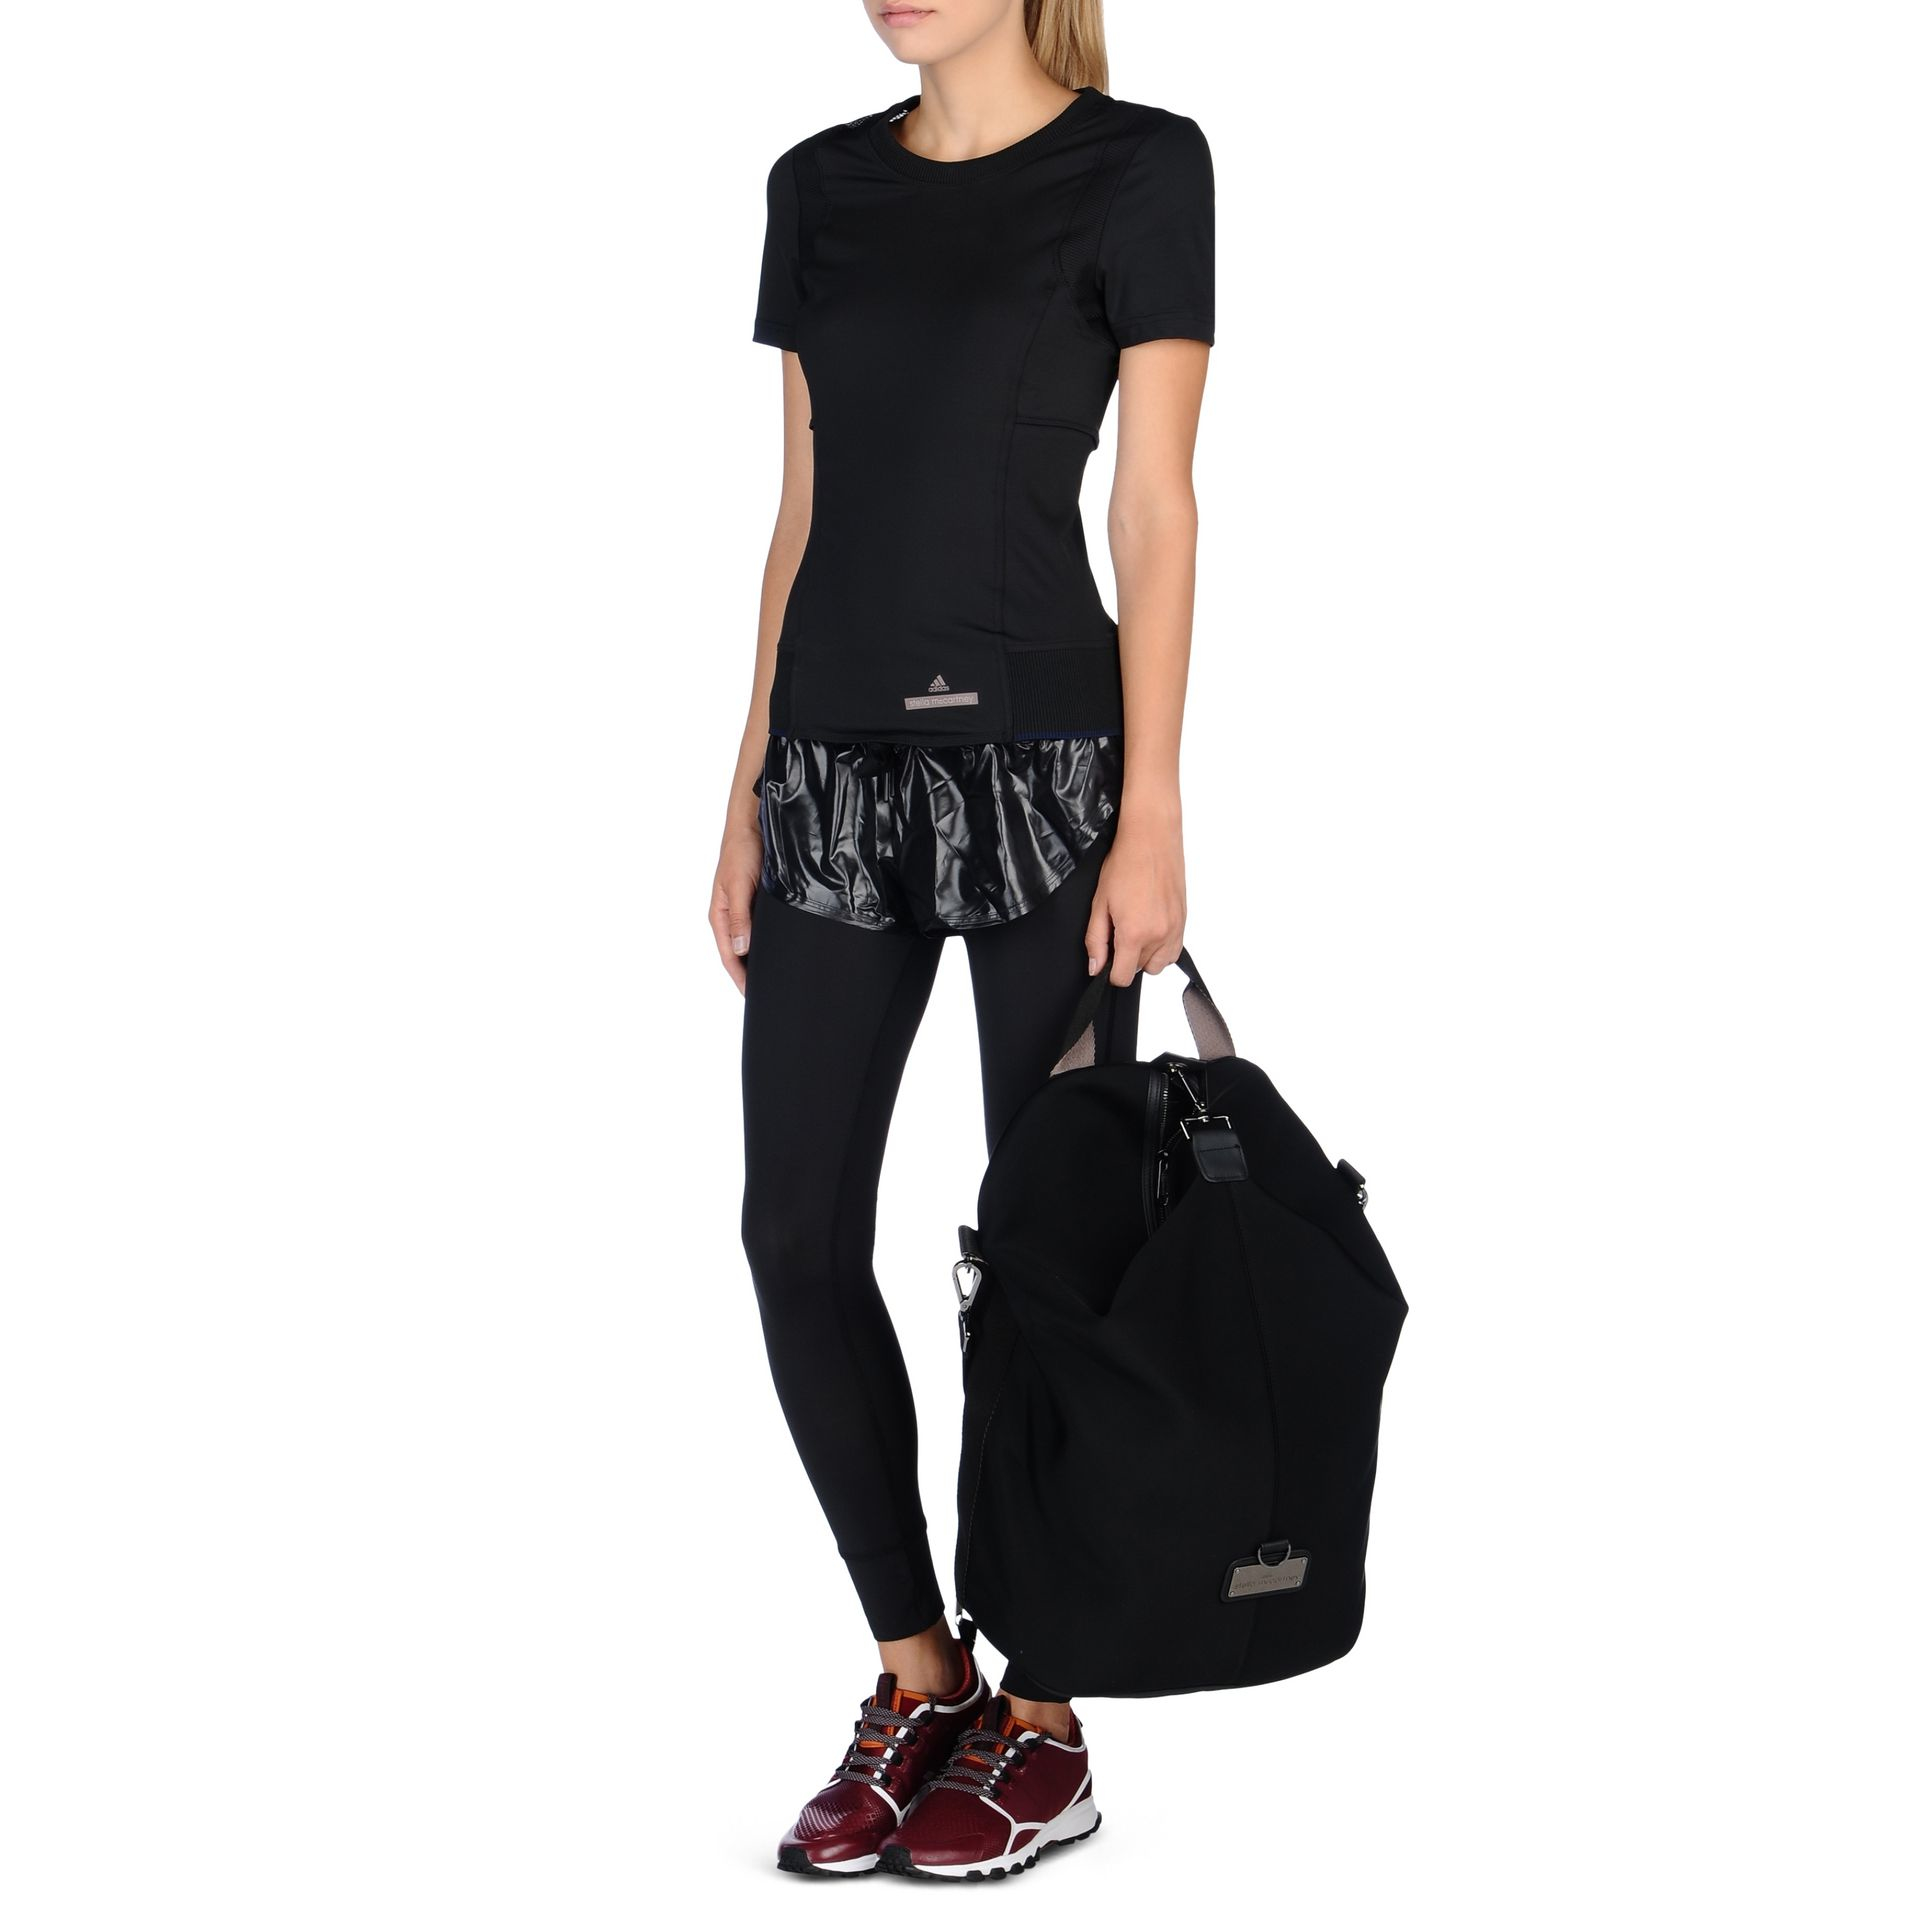 bfd59d2953fc Lyst - adidas By Stella McCartney Studio Neoprene Backpack in Black